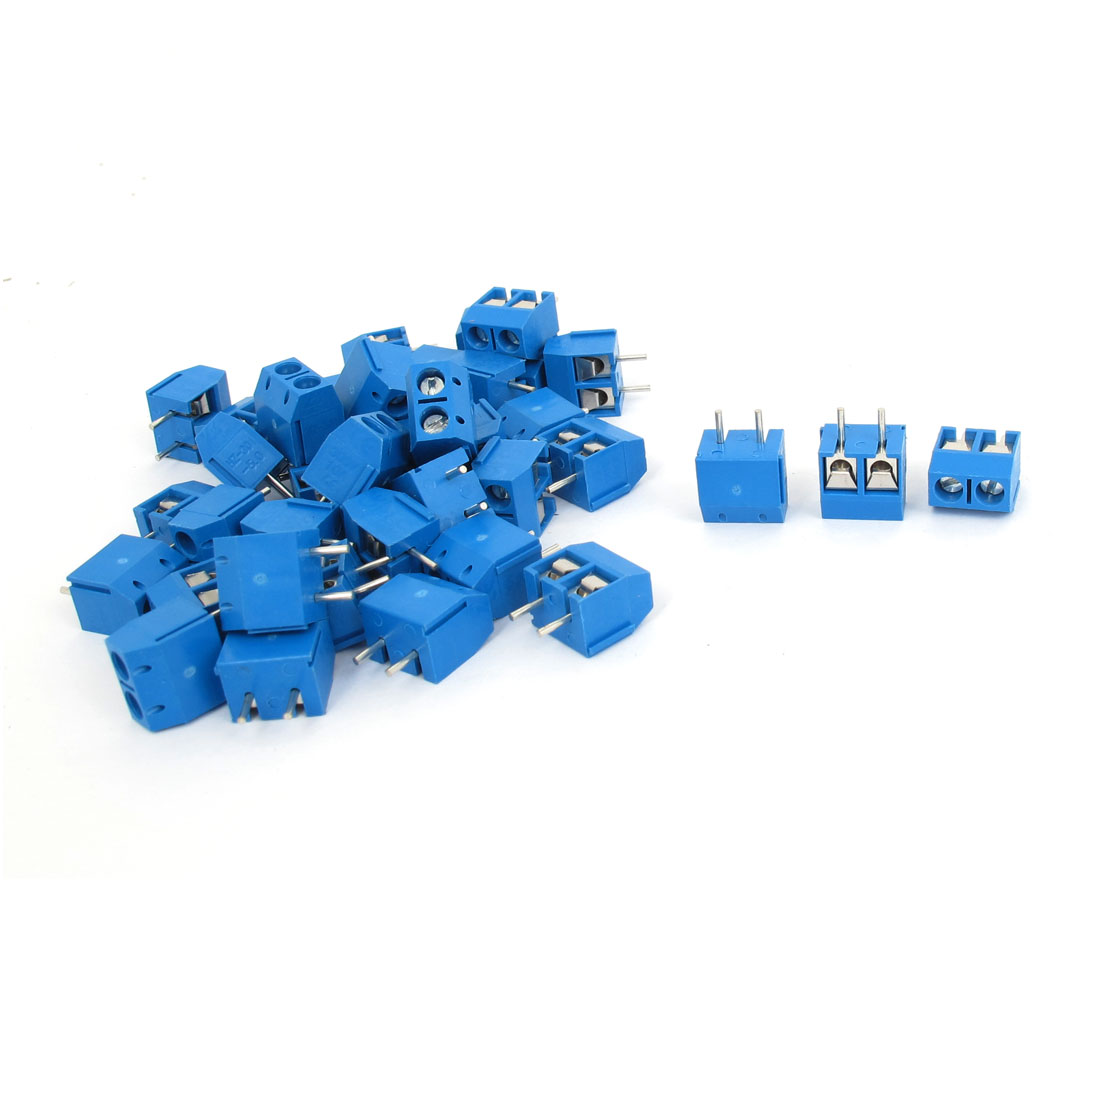 40 Pcs 2 Pin 5mm Pitch PCB Mount Screw Terminal Block Blue AC 300V 10A